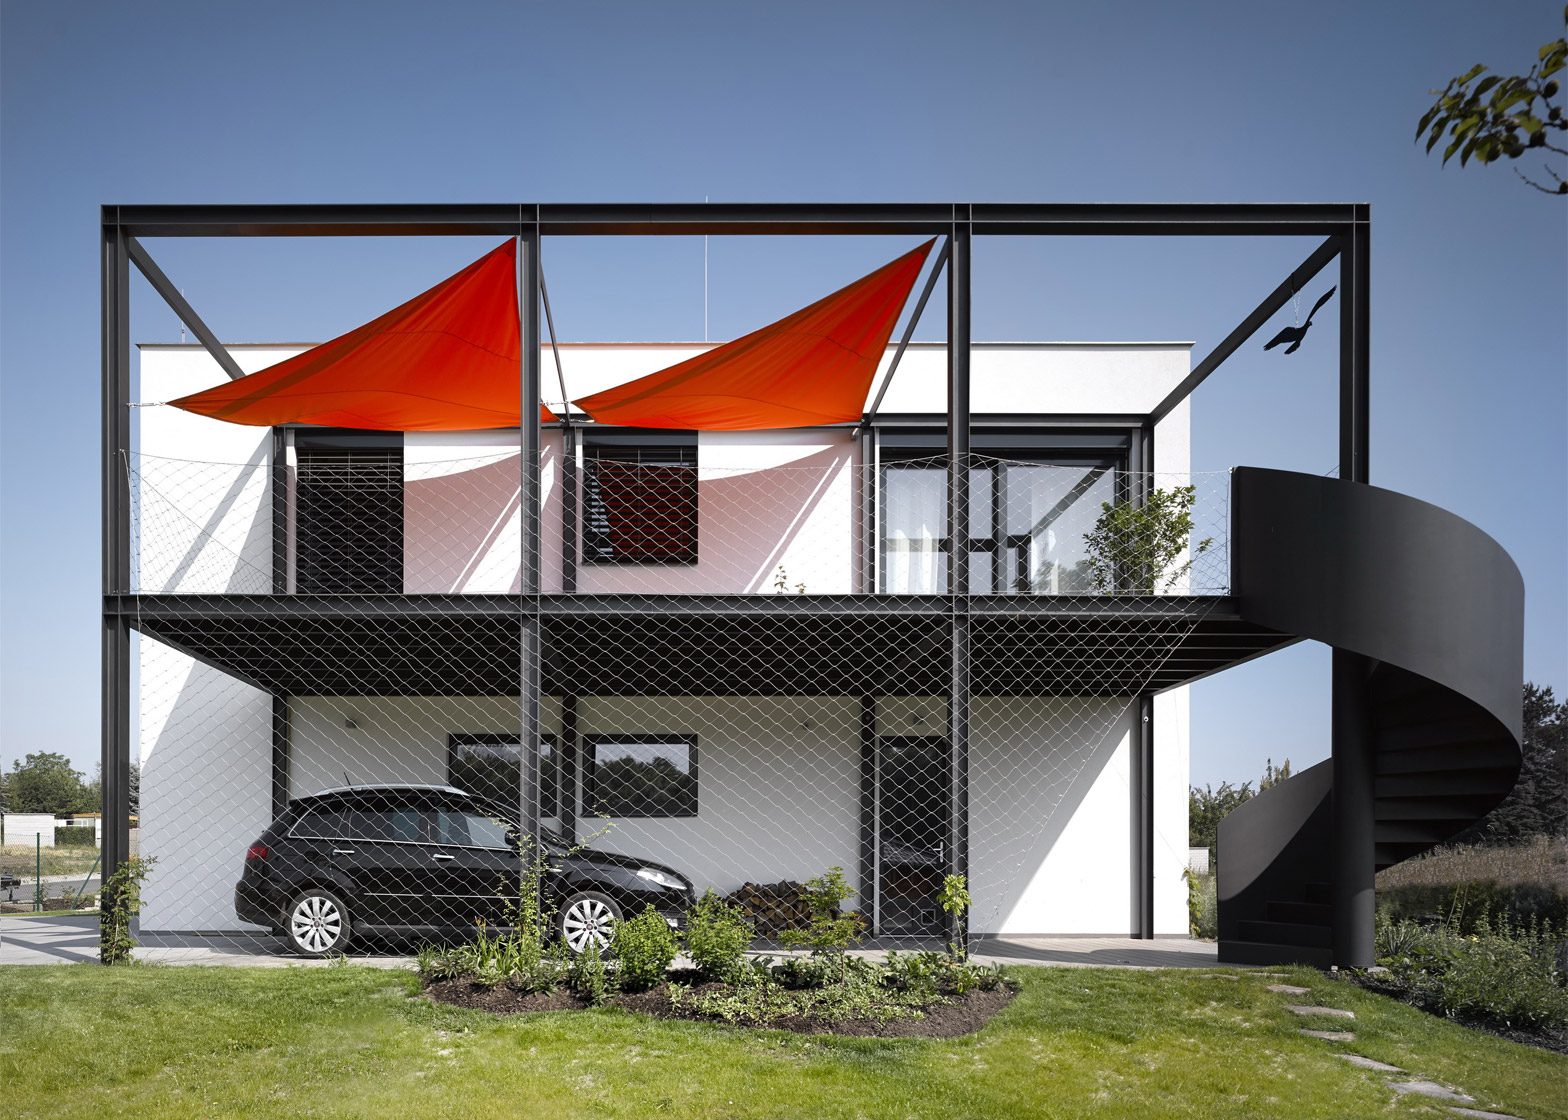 House for a racing car driver by Stempel and Tesar